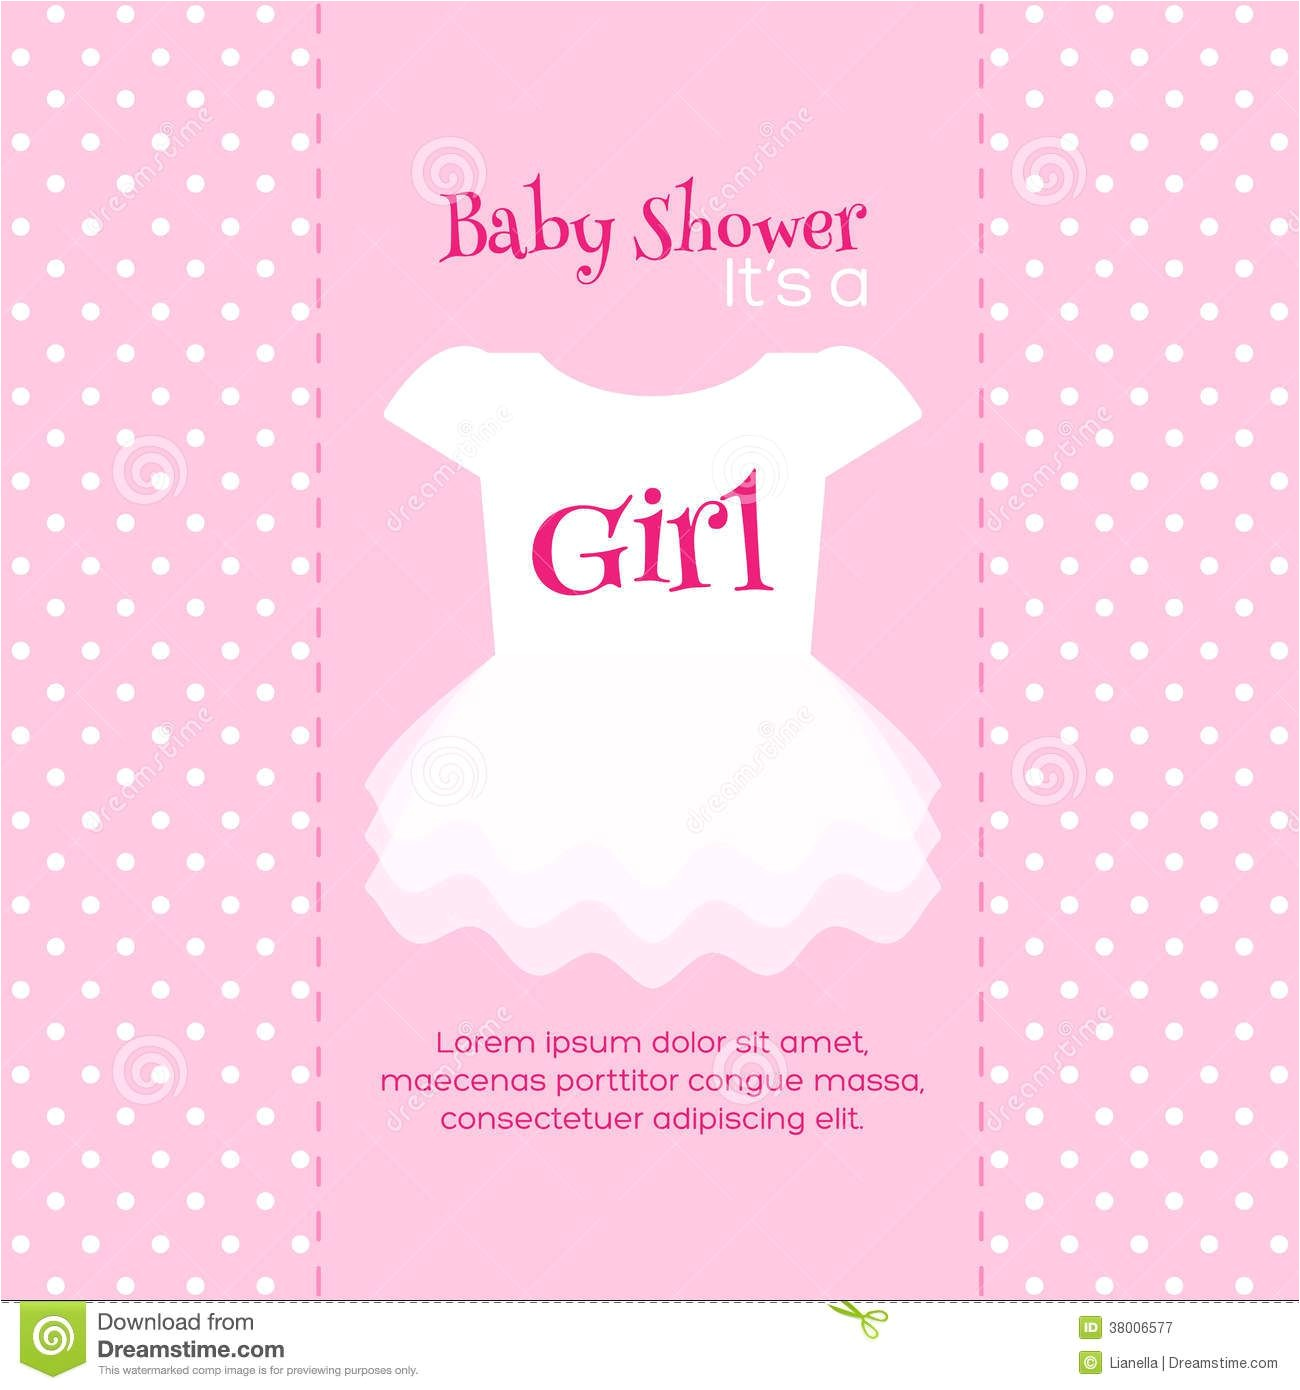 free baby shower invitation cards designs